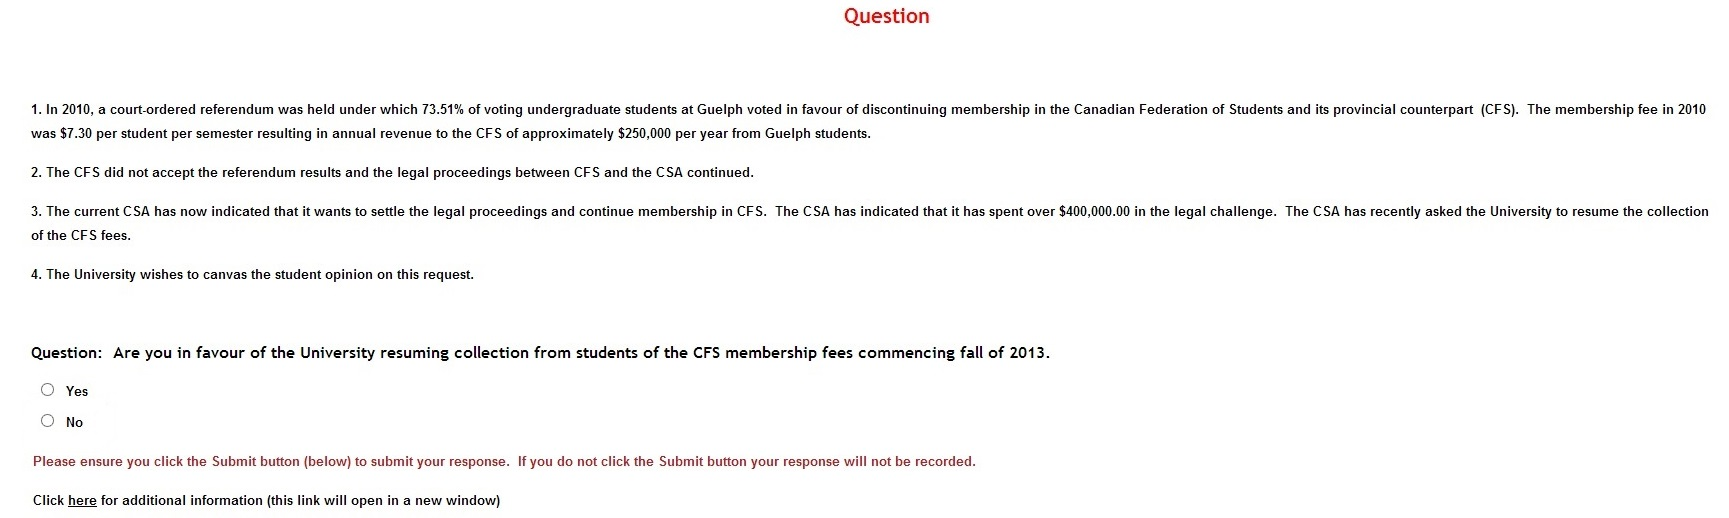 University of Guelph - Survey Question re CFS Fee collection - April 5, 2013